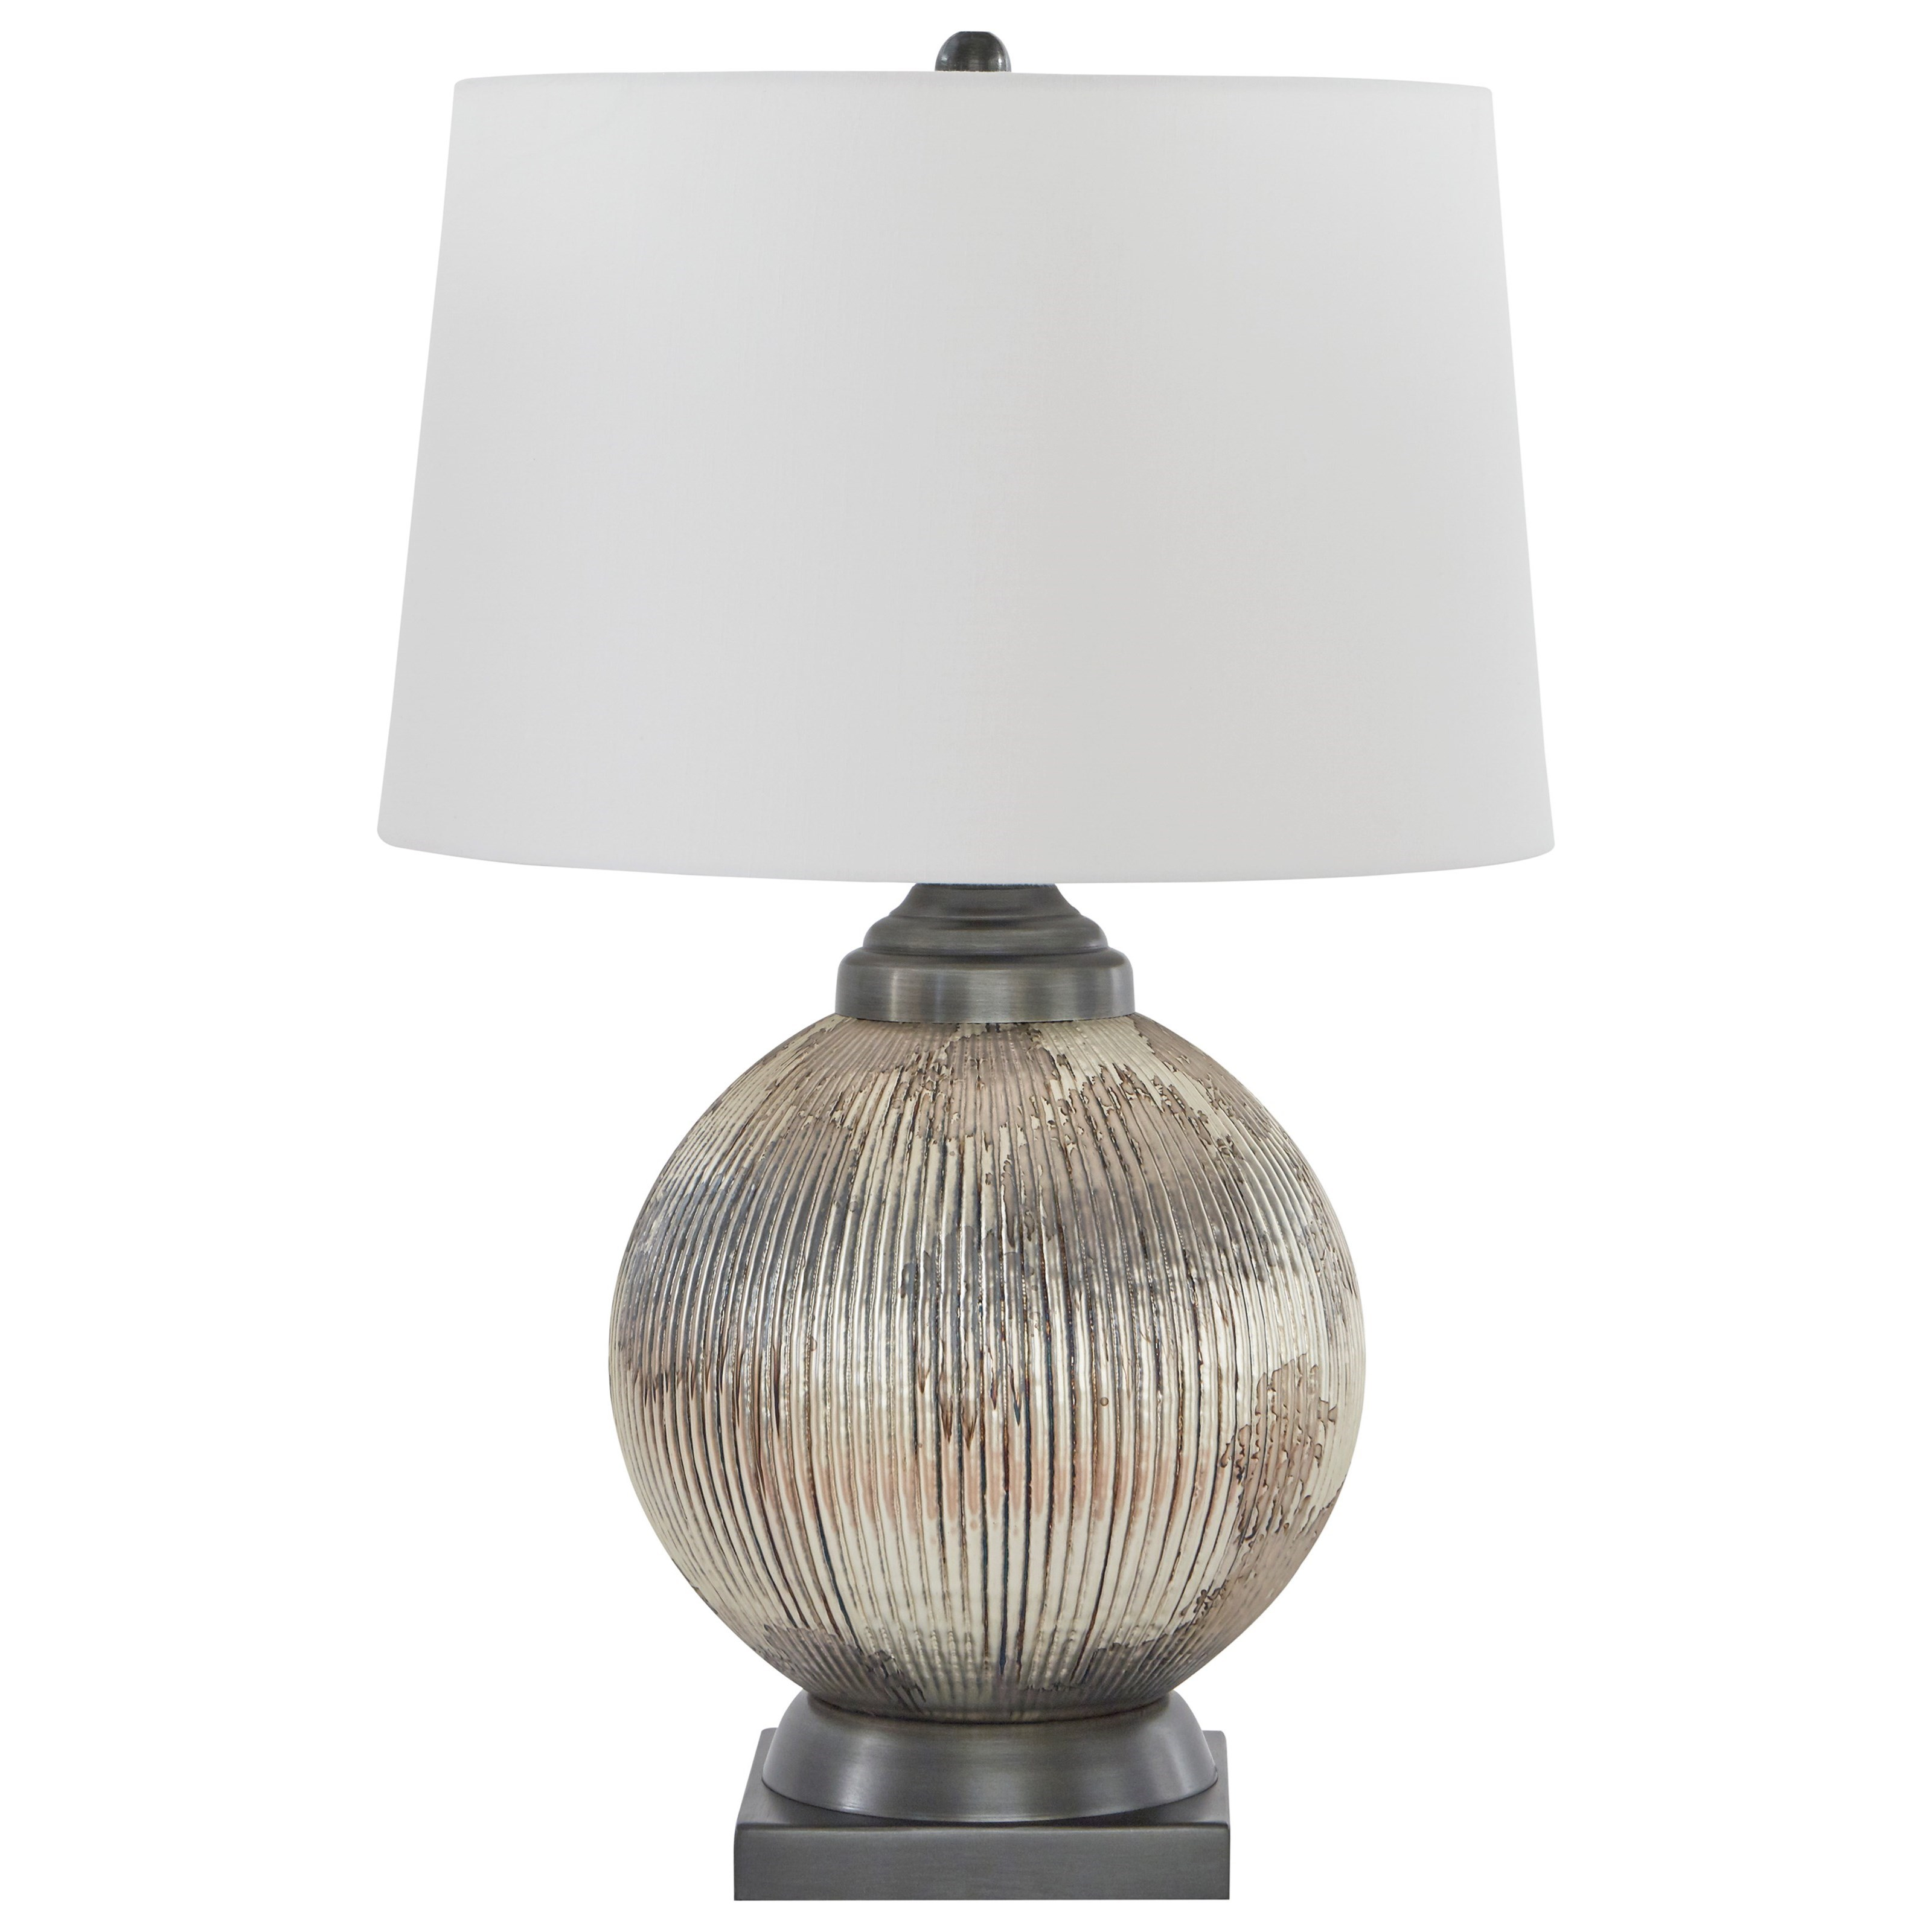 Lamps - Traditional Classics Cailan Silver/Bronze Finish Glass Table Lamp by Ashley (Signature Design) at Johnny Janosik